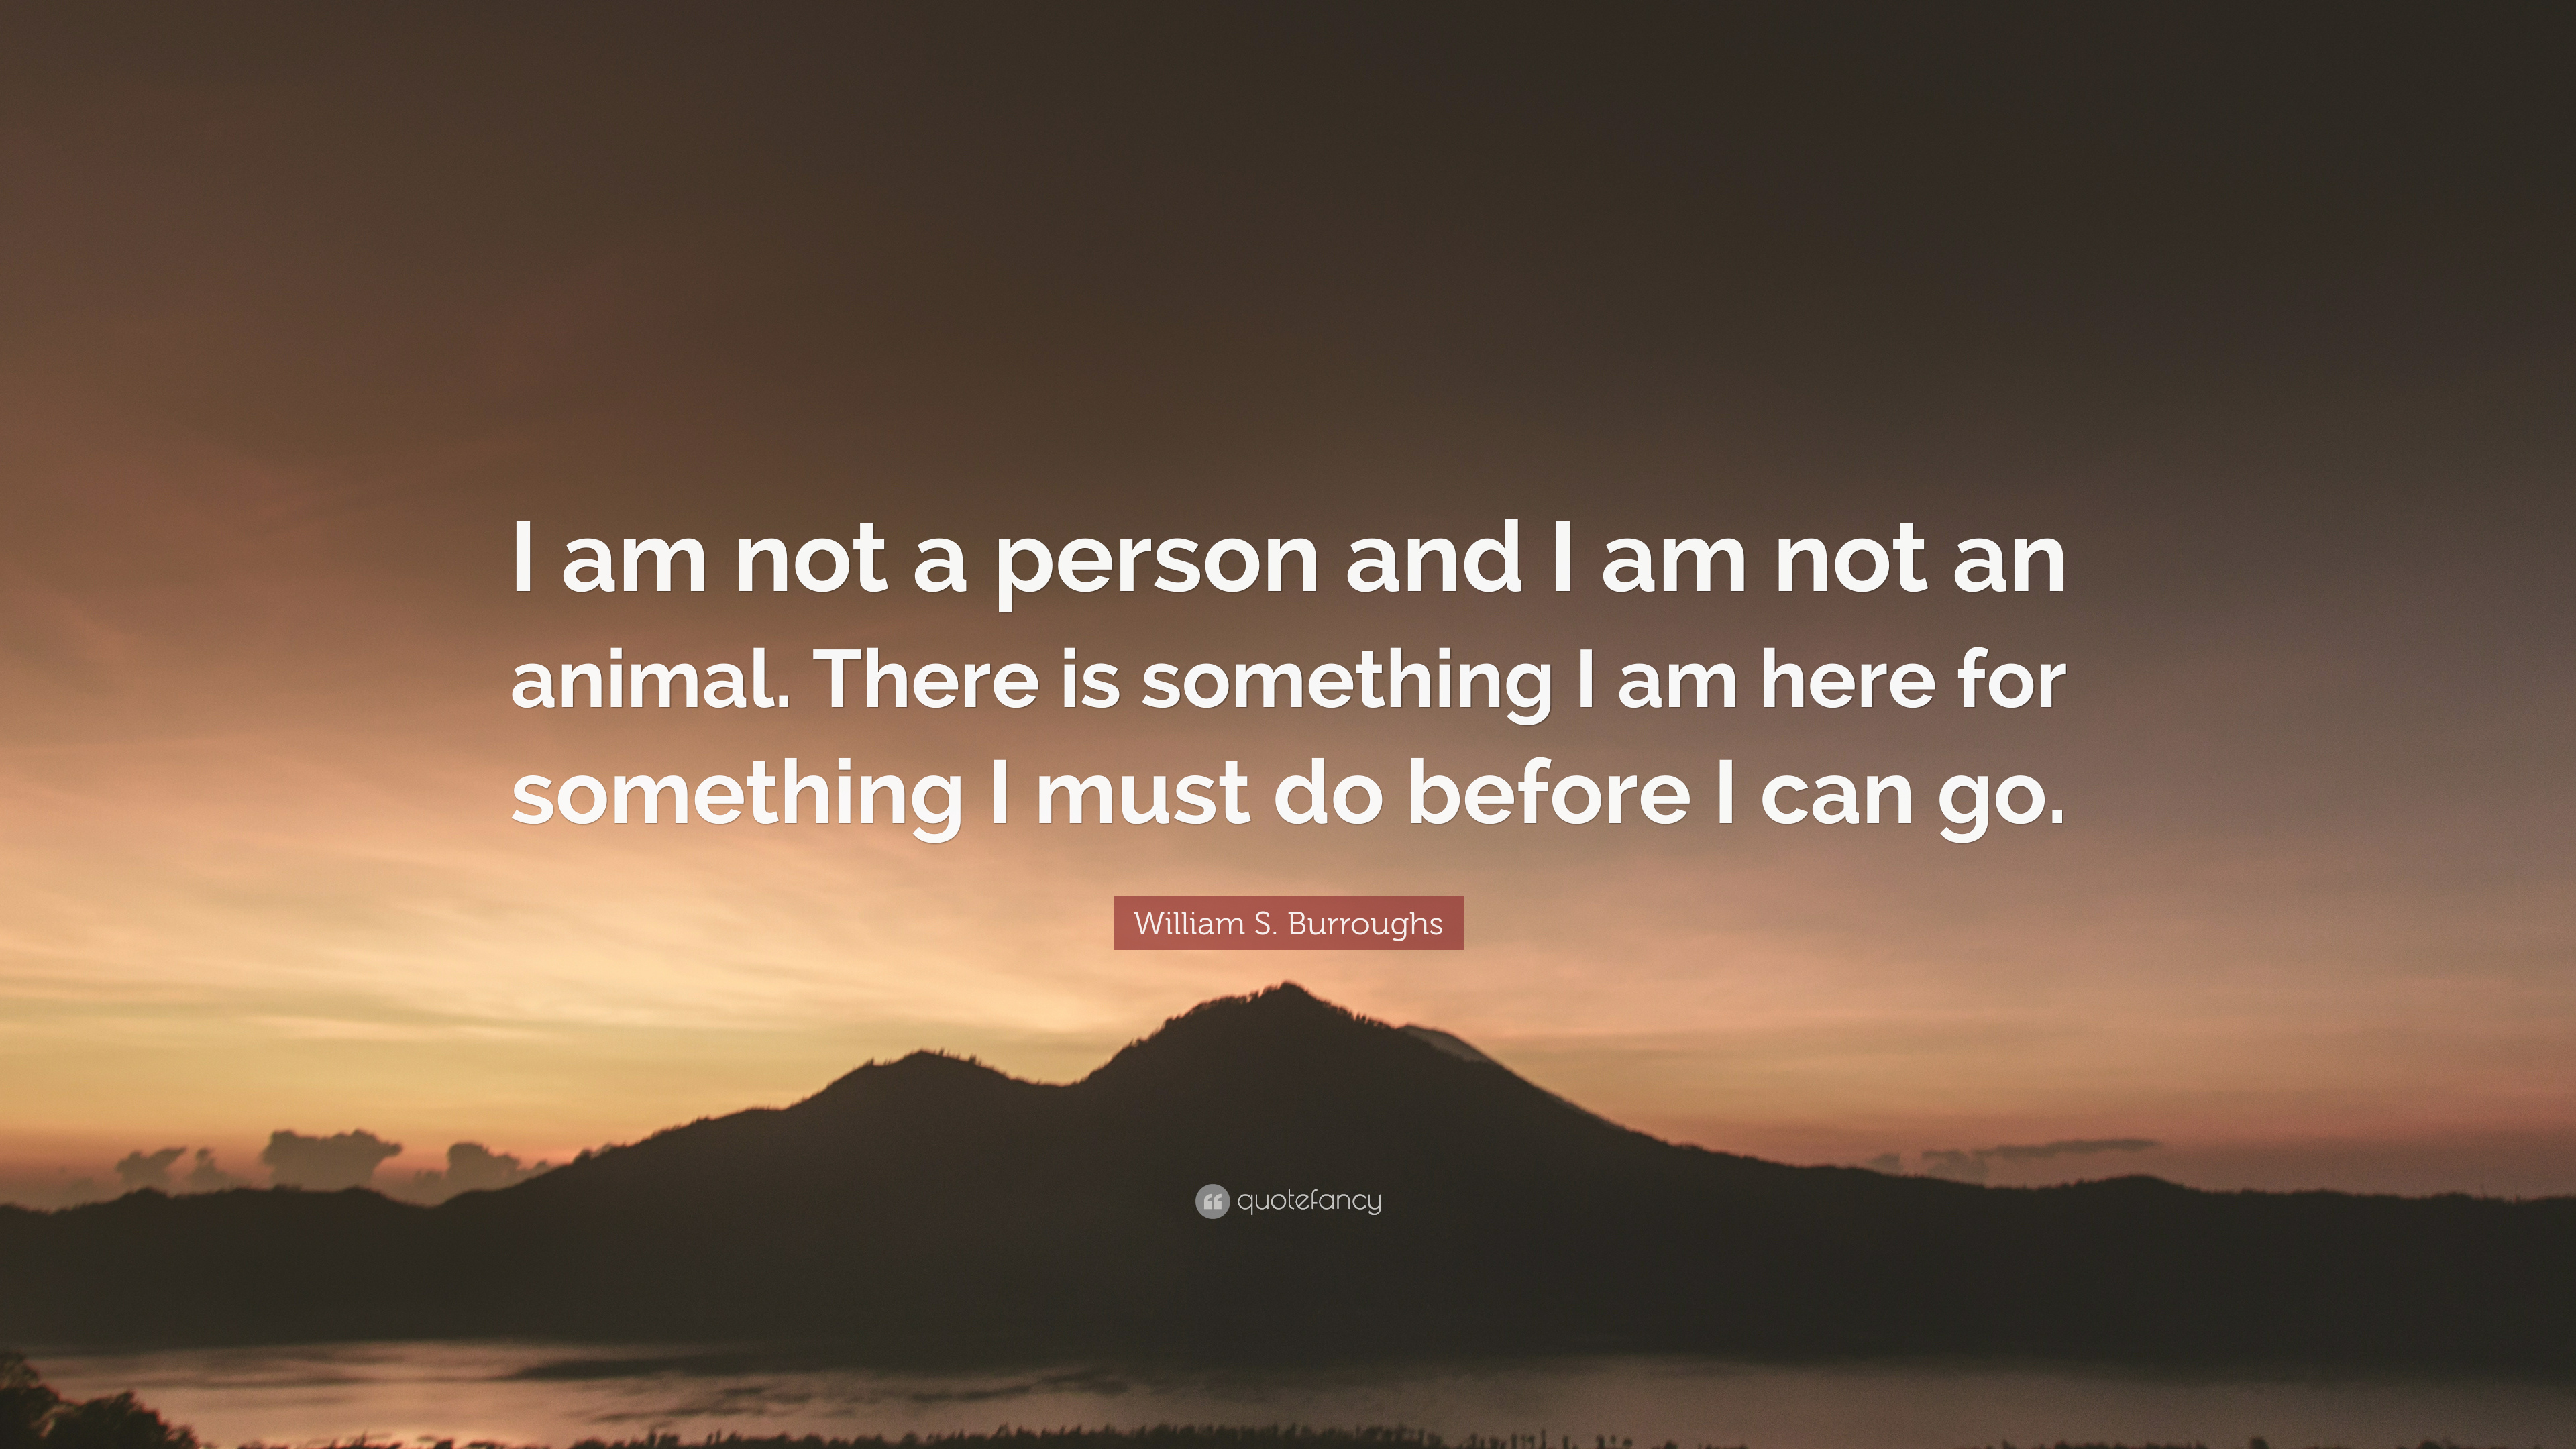 William S Burroughs Quote I Am Not A Person And I Am Not An